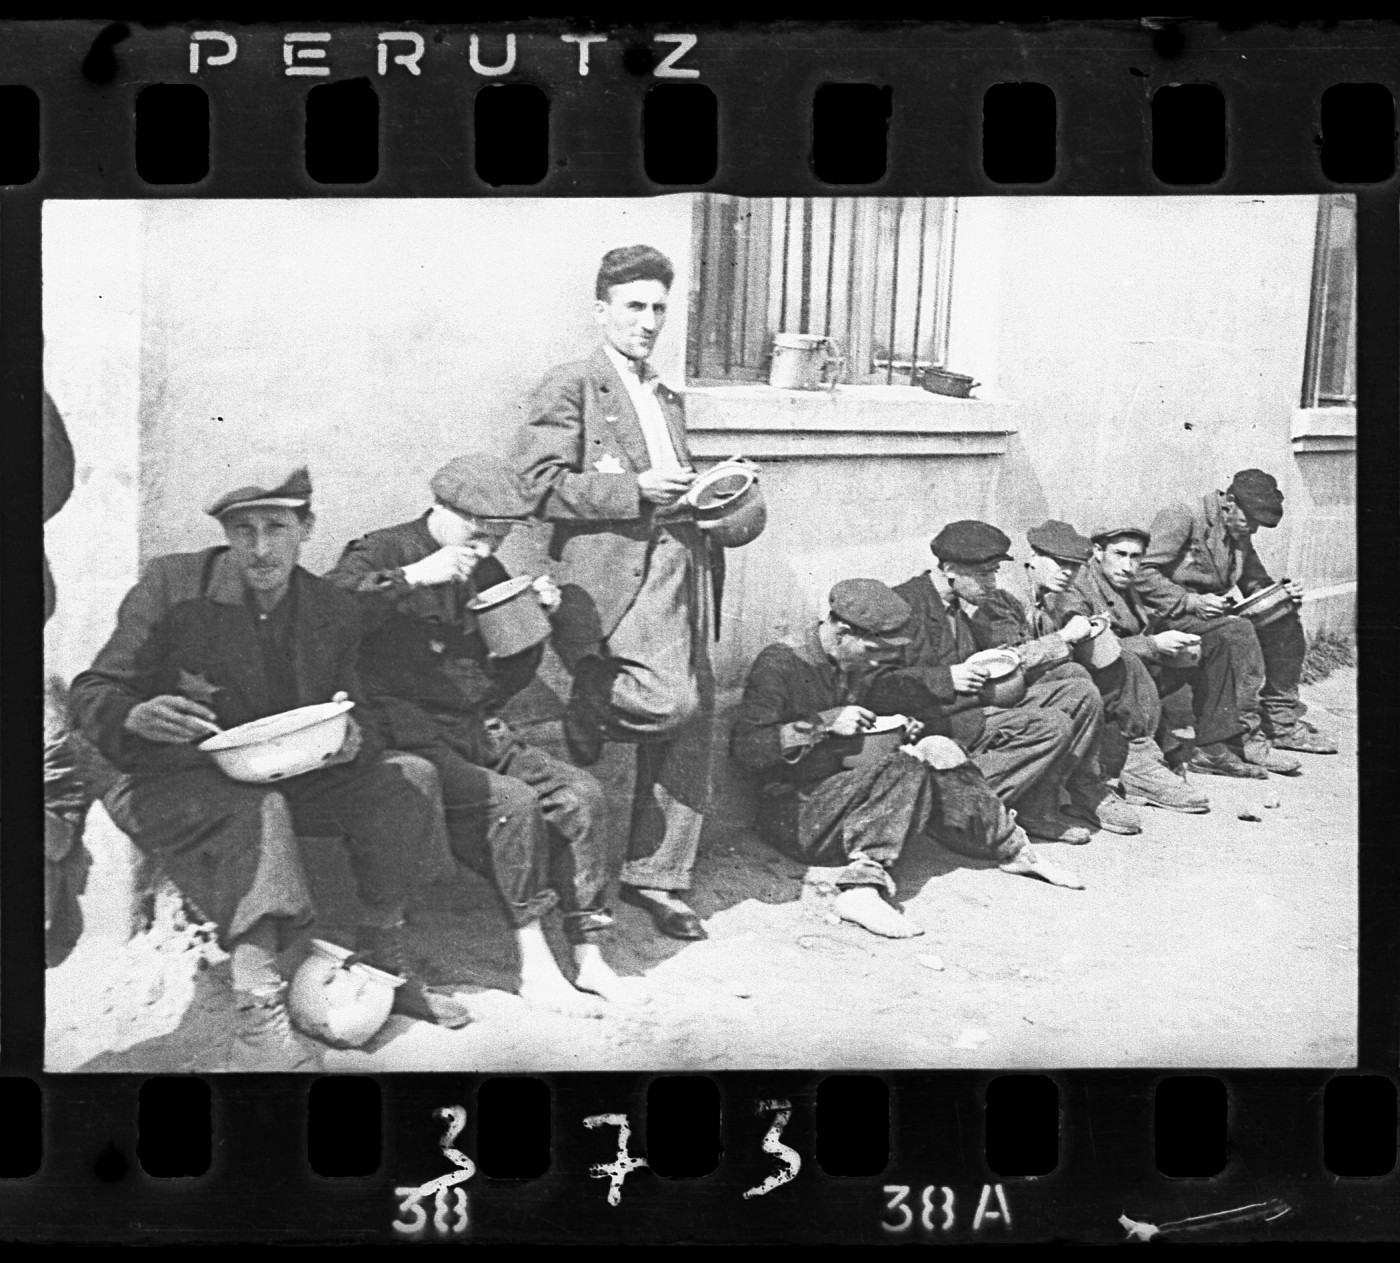 "Henryk Ross, </span><span><em>Lodz ghetto: ""Soup for lunch"" (Group of men alongside building eating from pails)</em>, </span><span>1940-44 Art Gallery of Ontario Gift from Archive of Modern Conflict, 2007 © Art Gallery of Ontario"